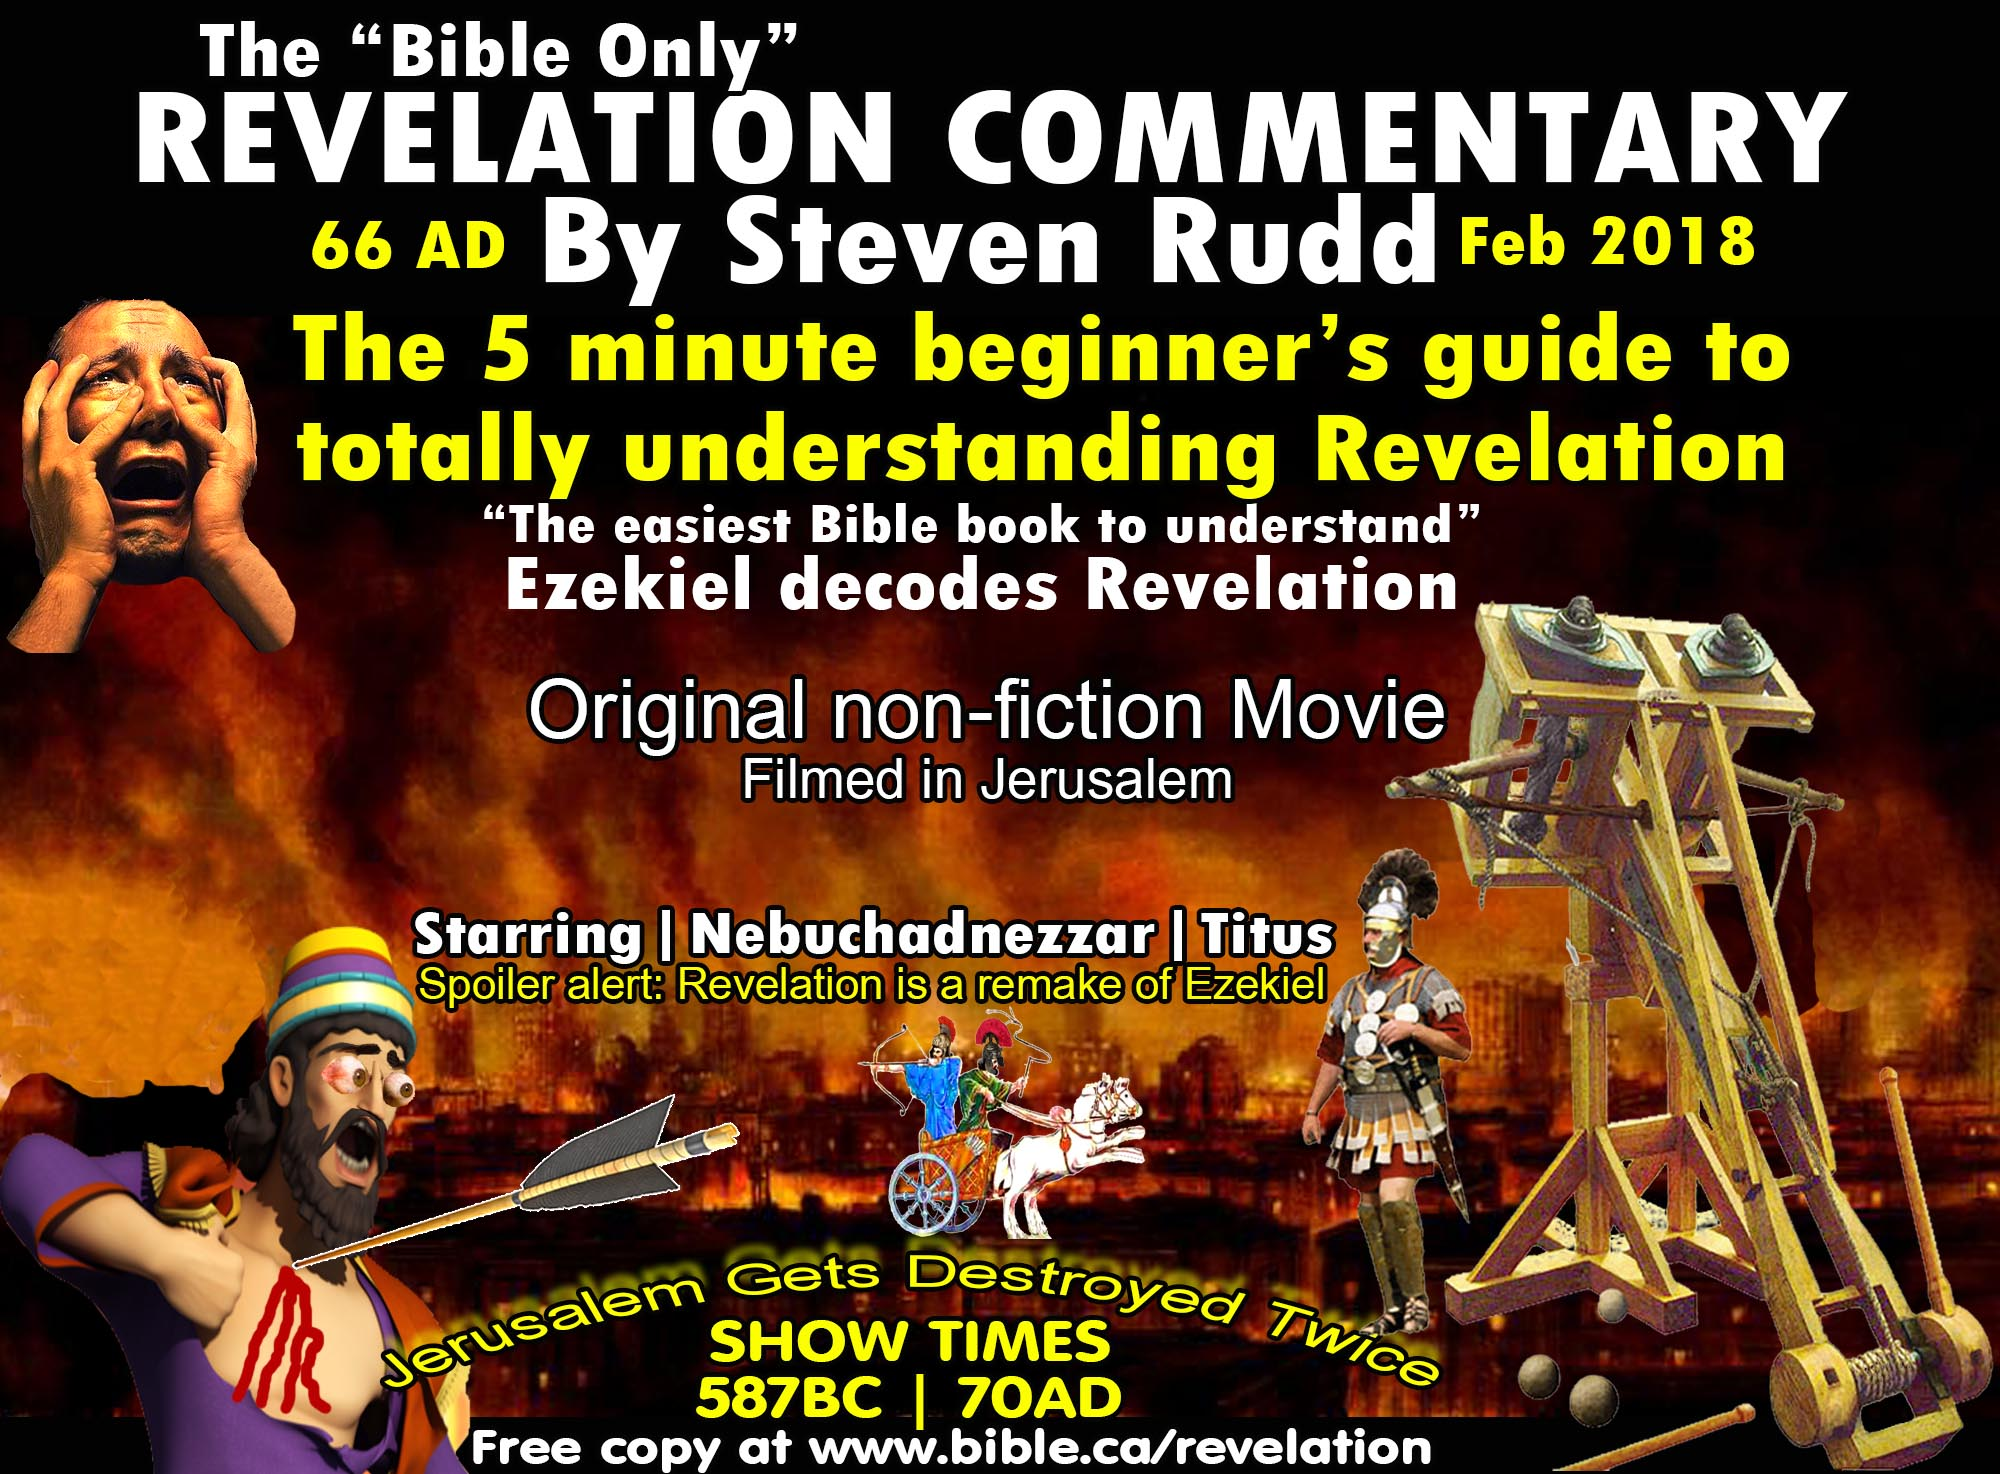 Bible Only Revelation Commentary by Steven Rudd